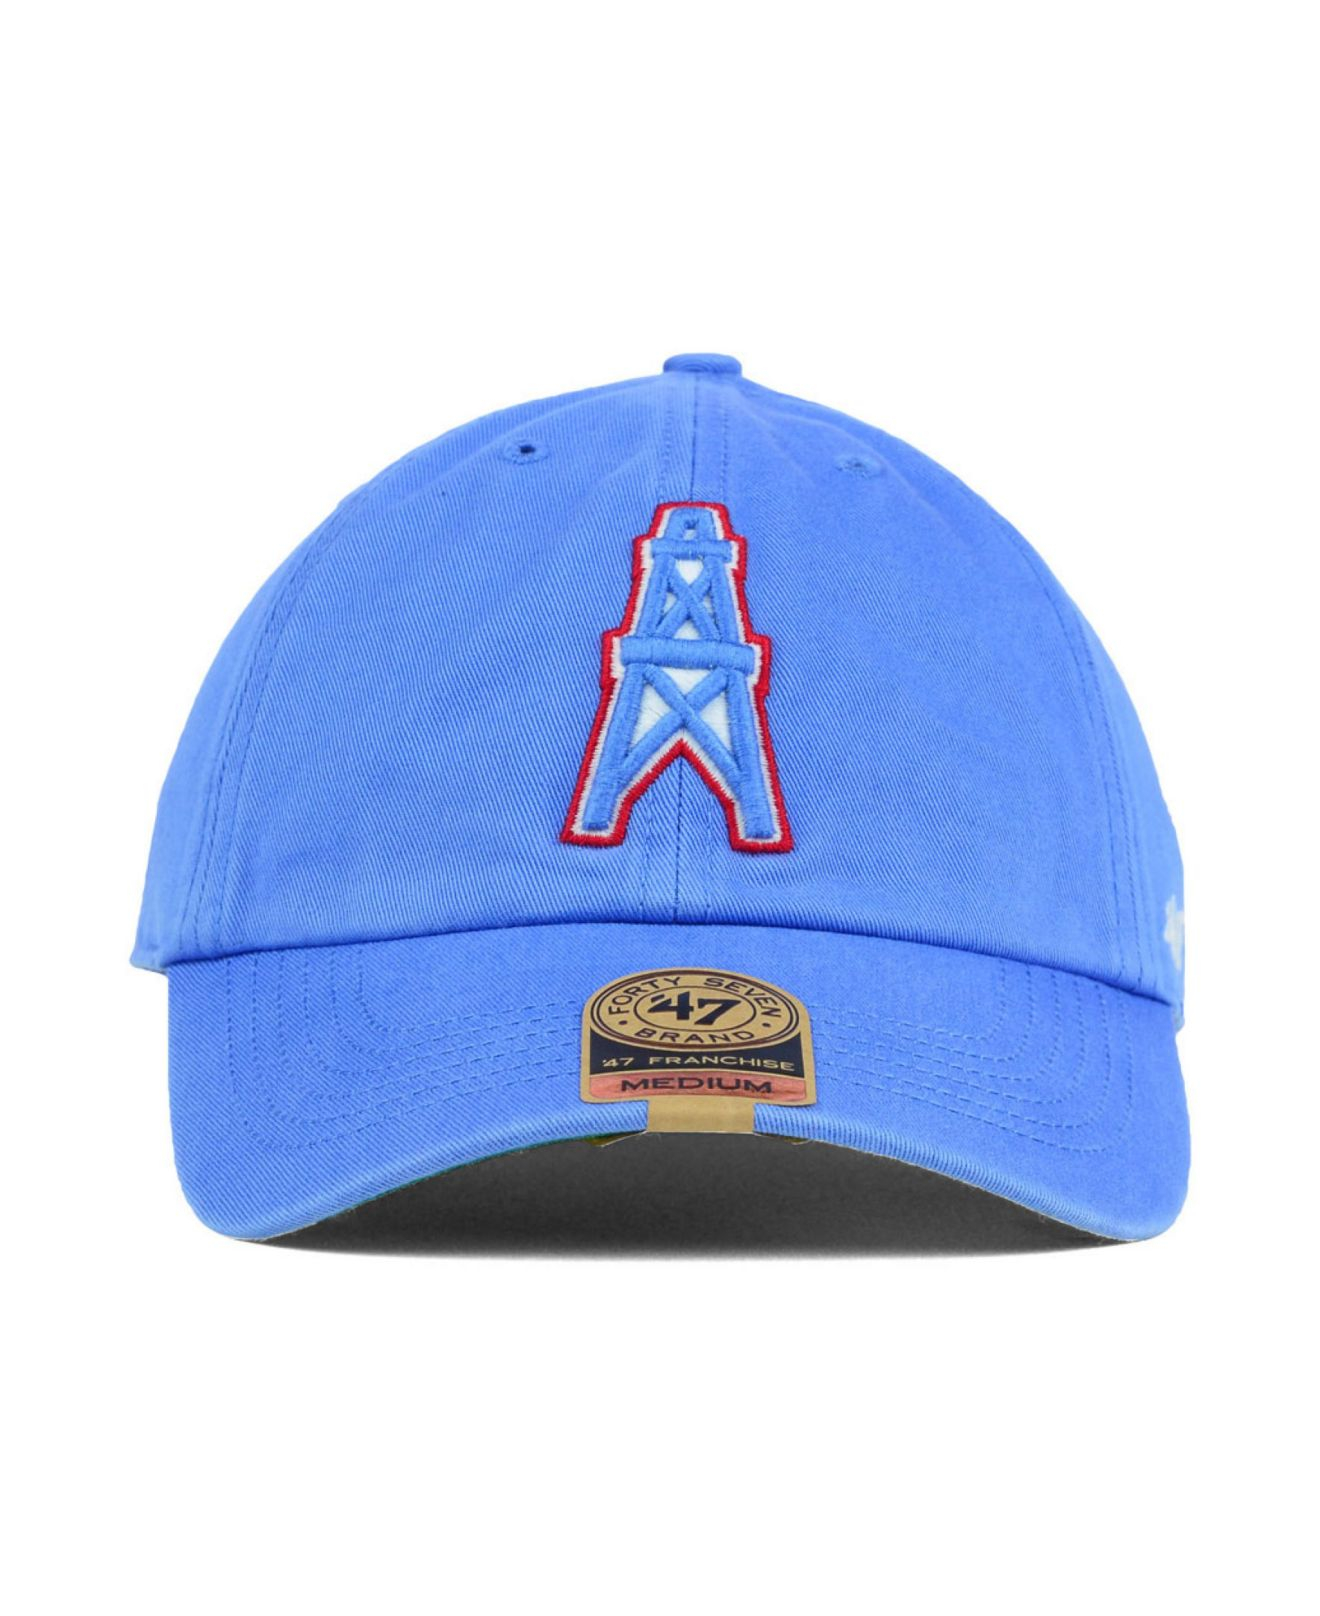 Lyst - 47 Brand Houston Oilers Franchise Cap in Blue for Men d9e0385303f